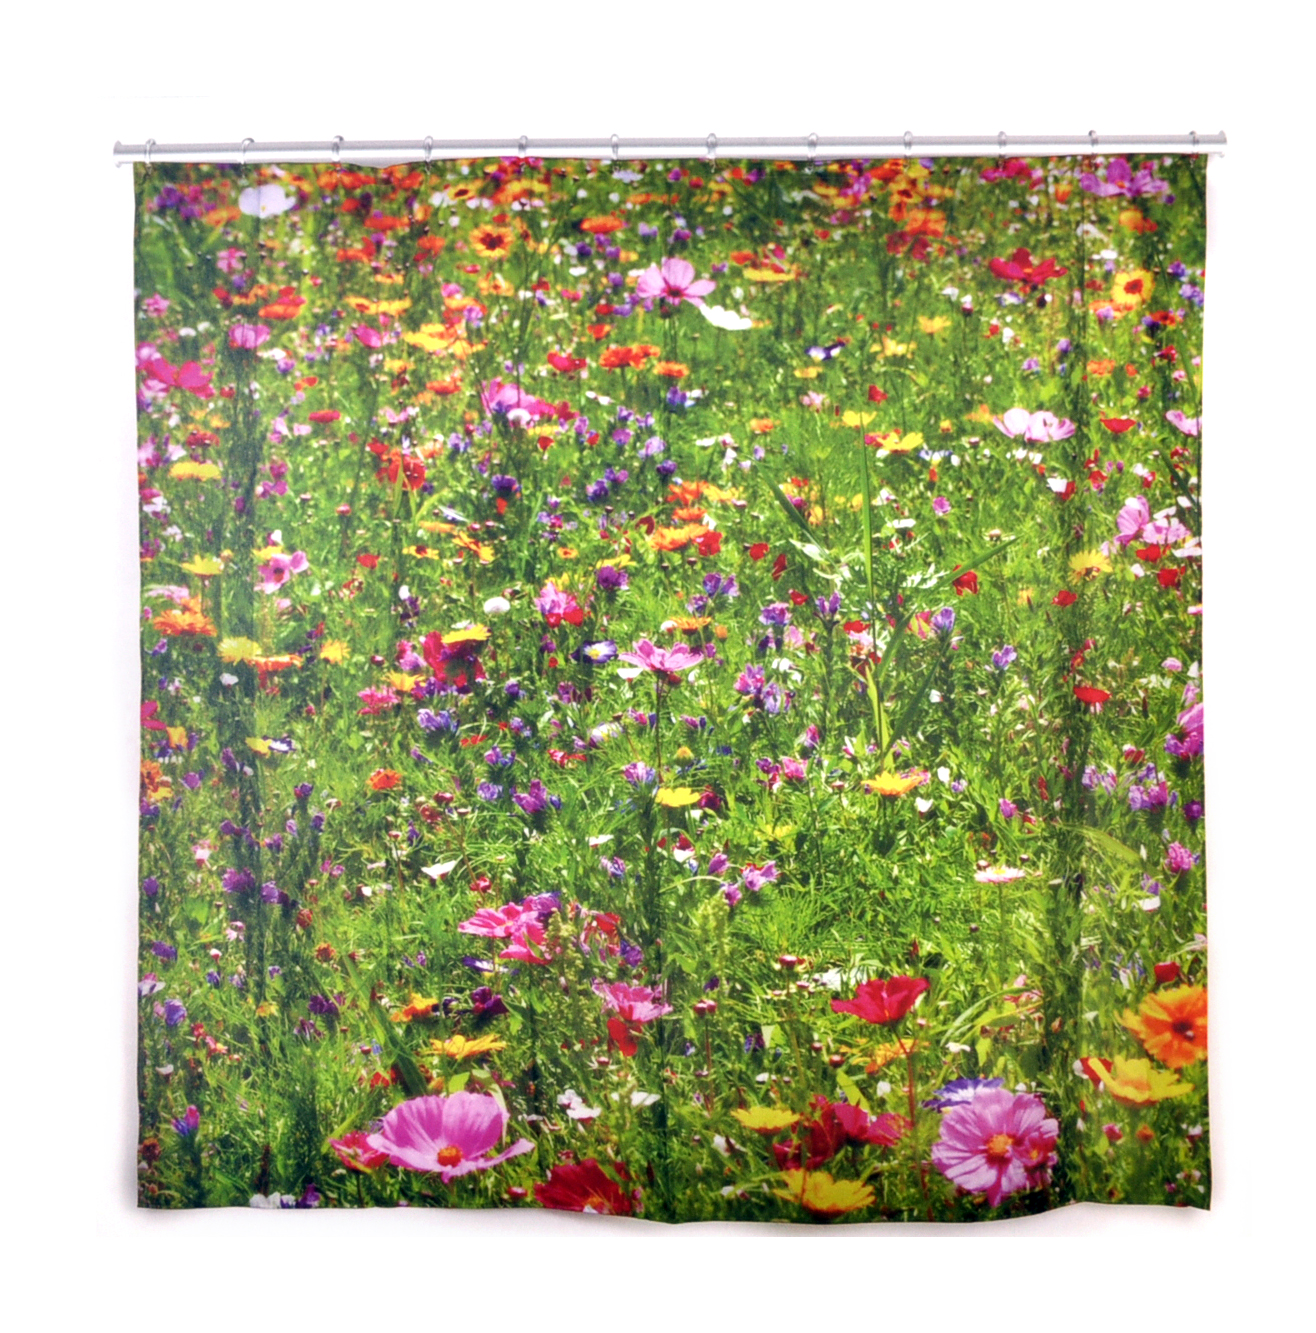 Flower Shower Curtain 180 X 200 Cm 70 79 Inches